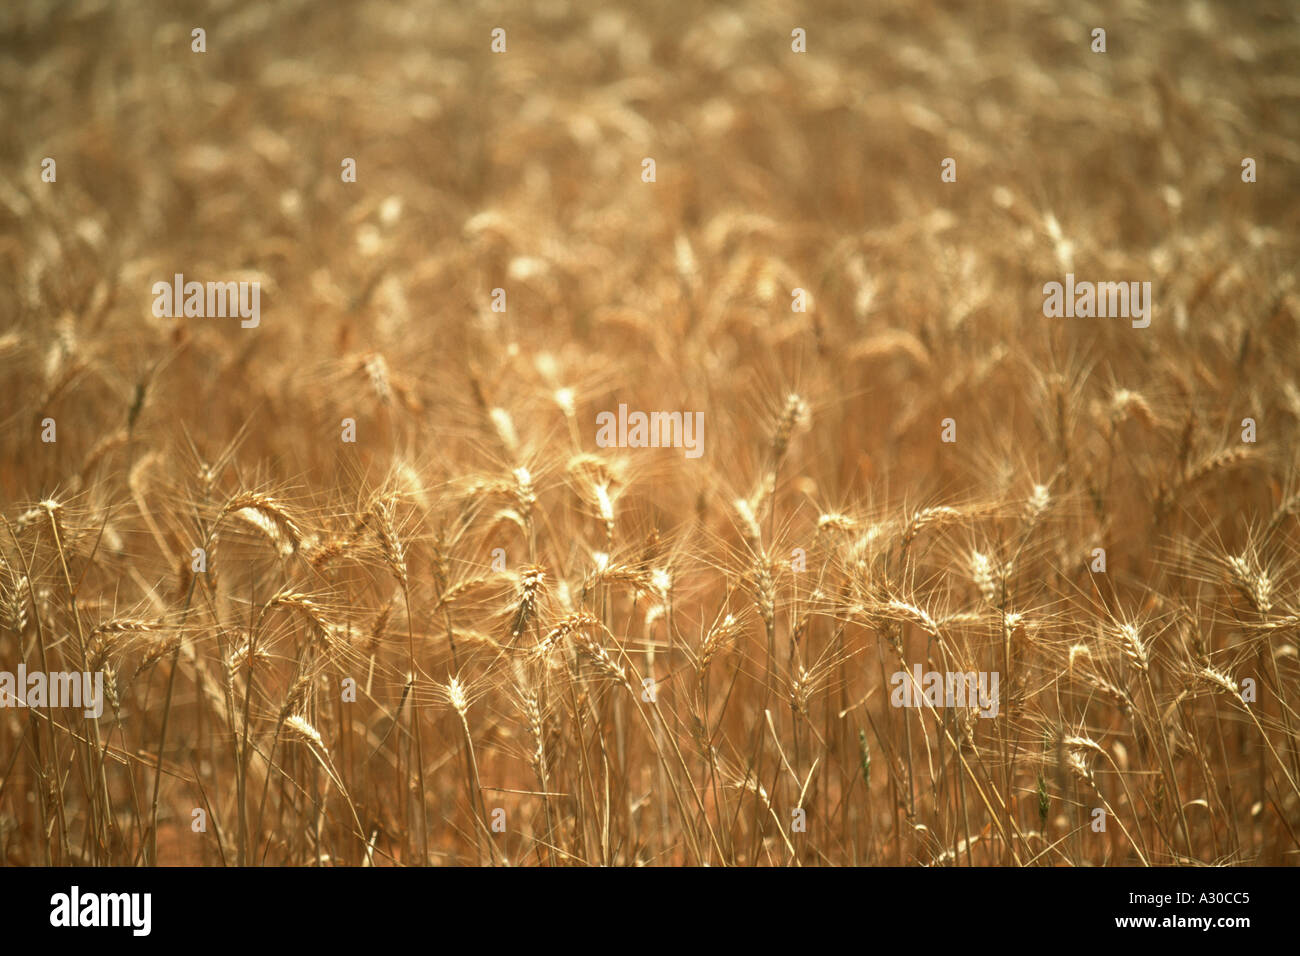 Golden shafts of wheat waving with the wind in the outback farming region of Western Australia  - Stock Image